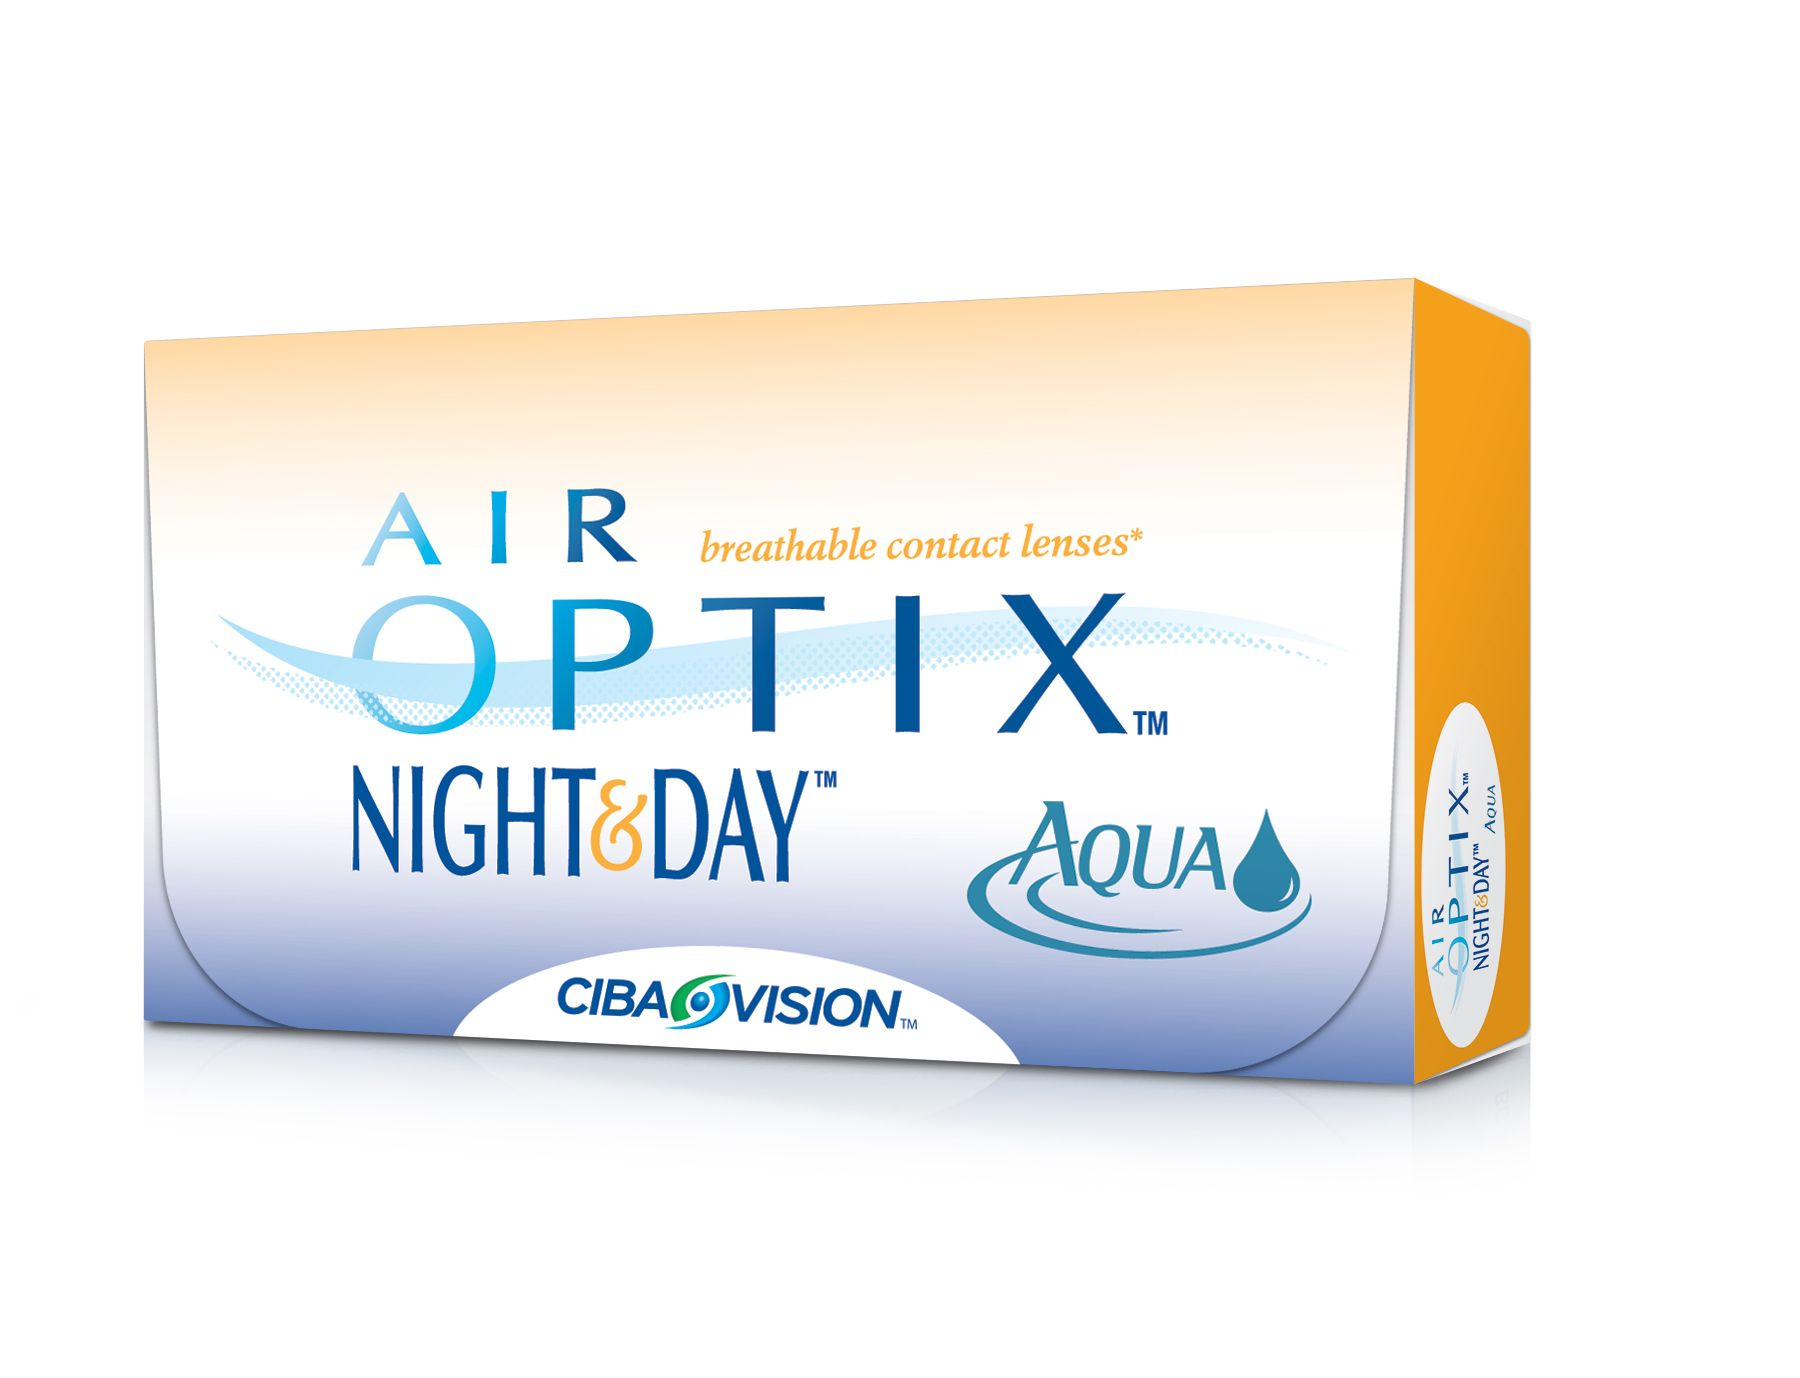 Air Optix Night & Day Aqua Air optix, Day for night